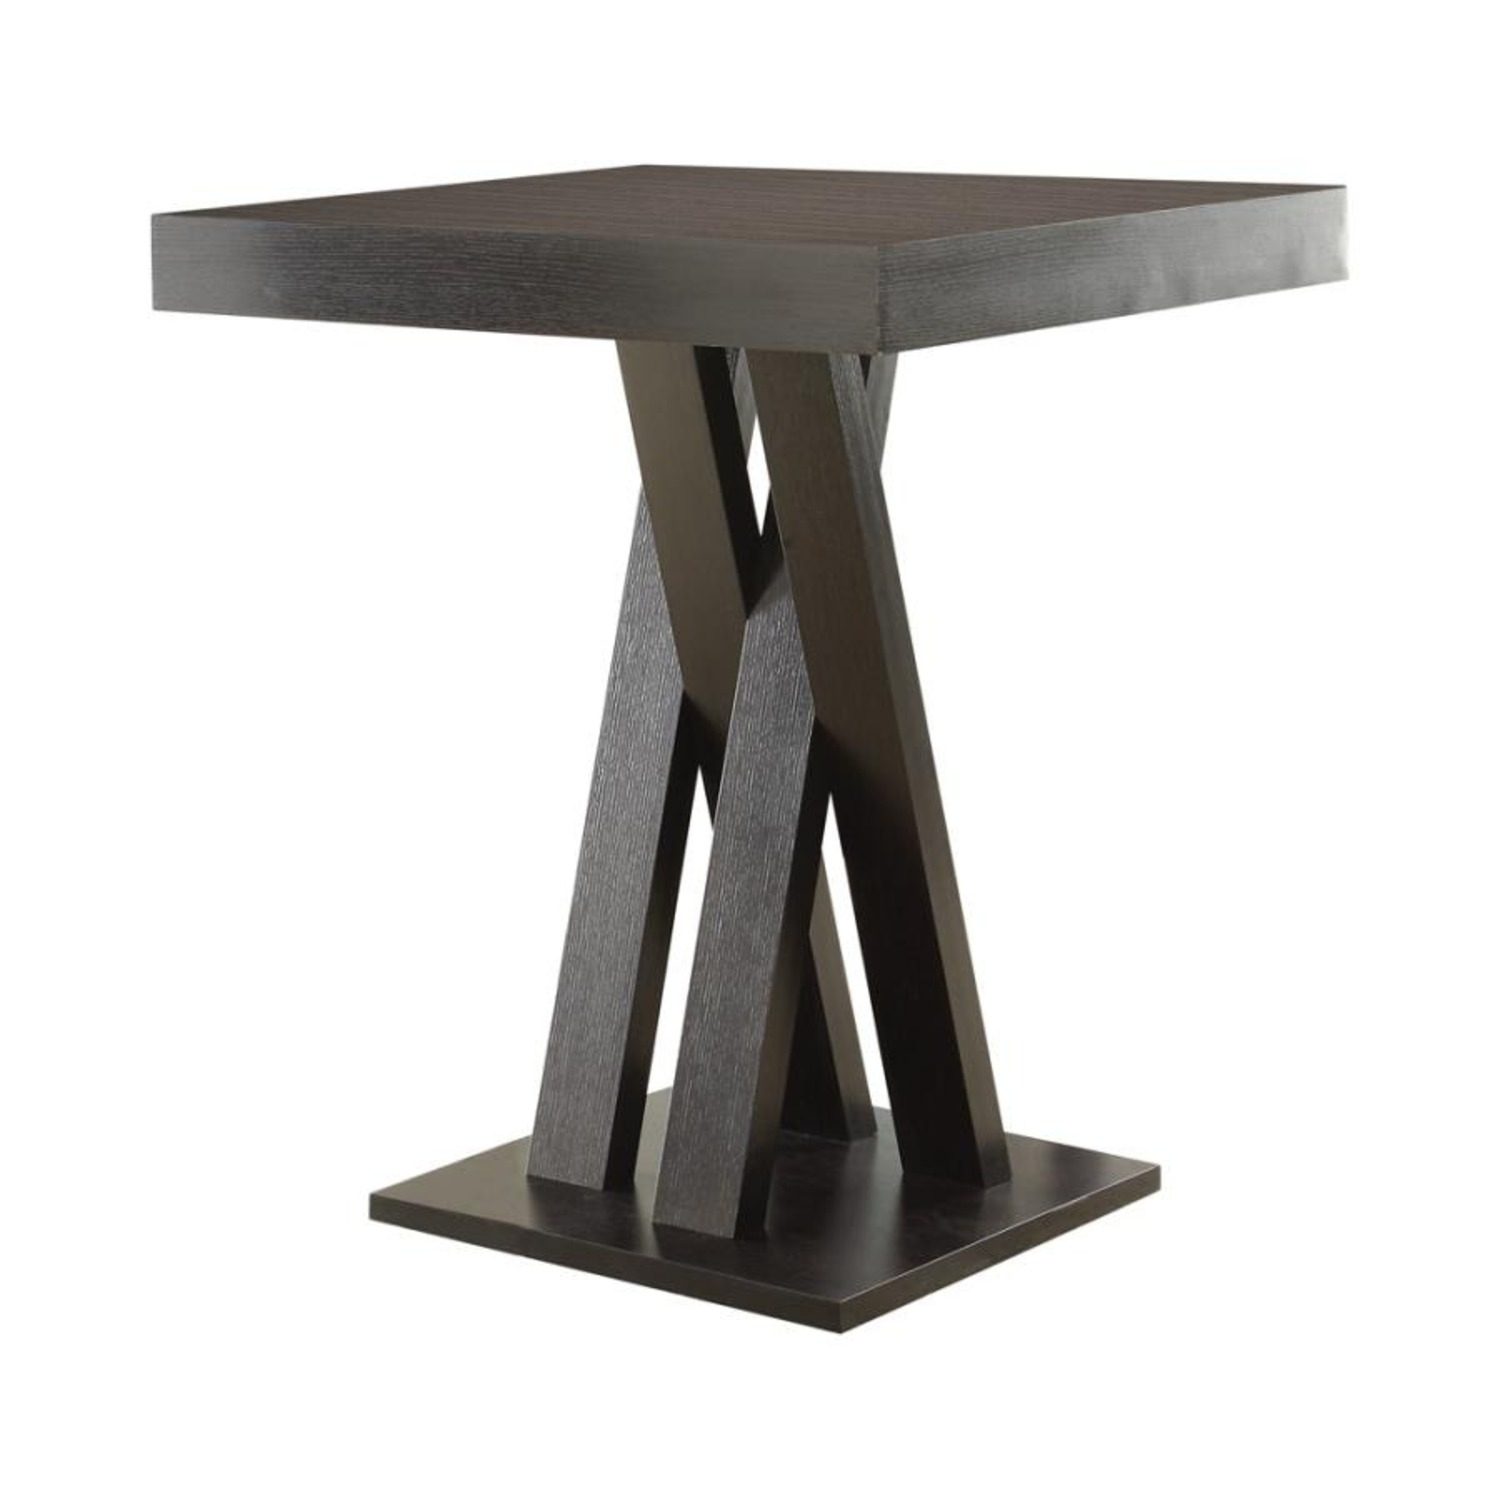 Bar Table In Cappuccino Finish W/ Sculptural base - image-0